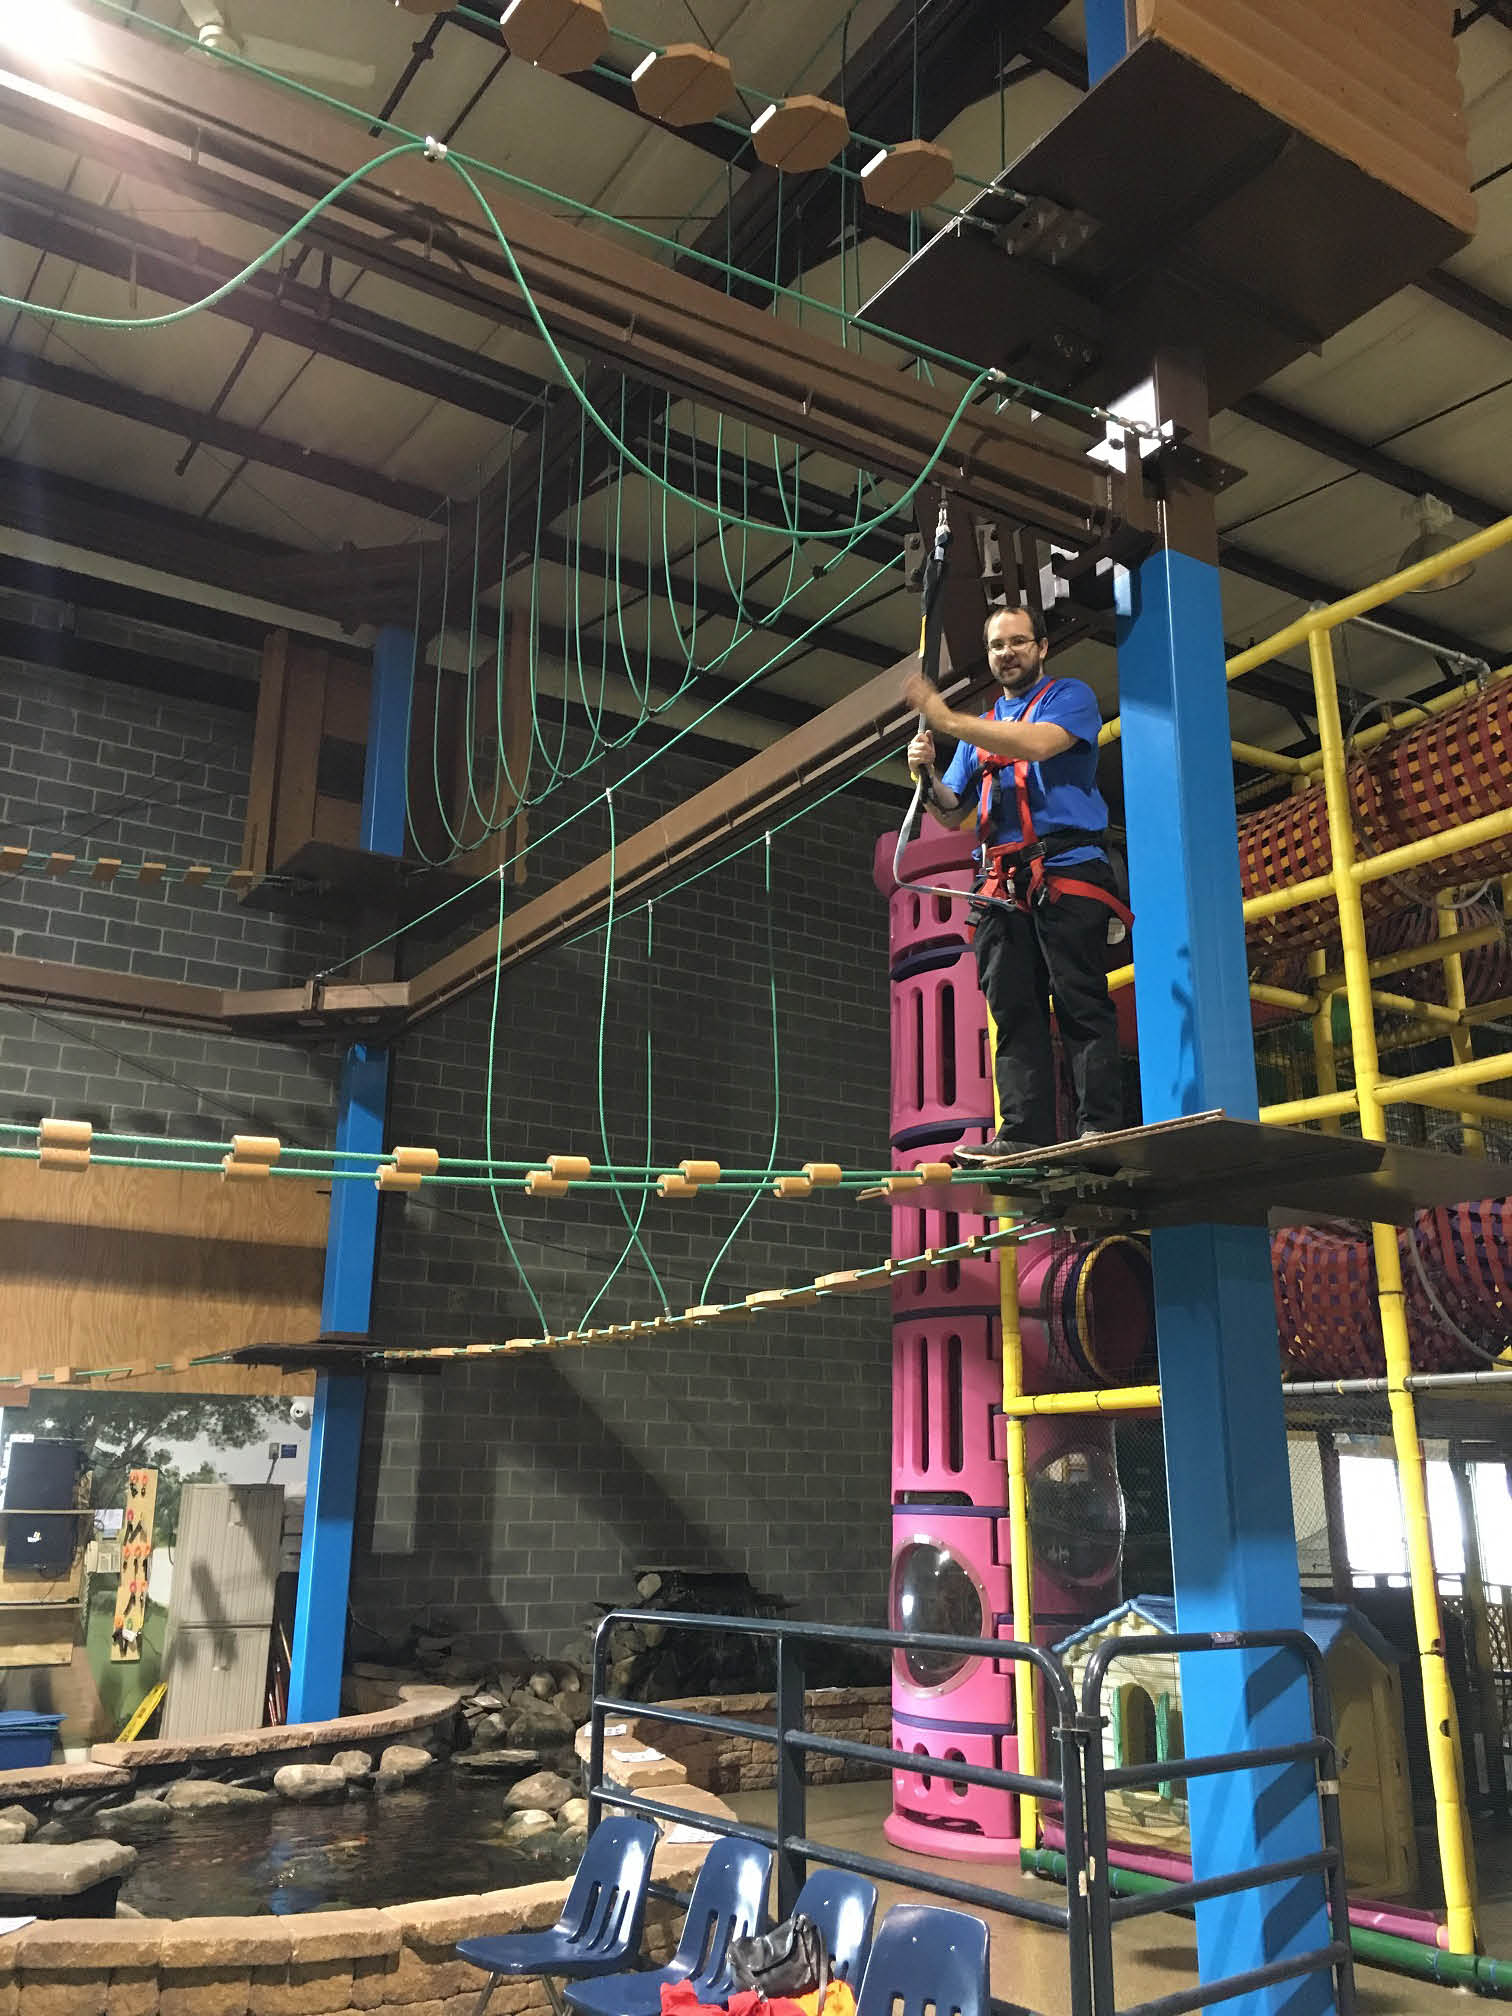 Ropes course at Ozzy's Family Fun Center in new Hamburg, PA and Blandon